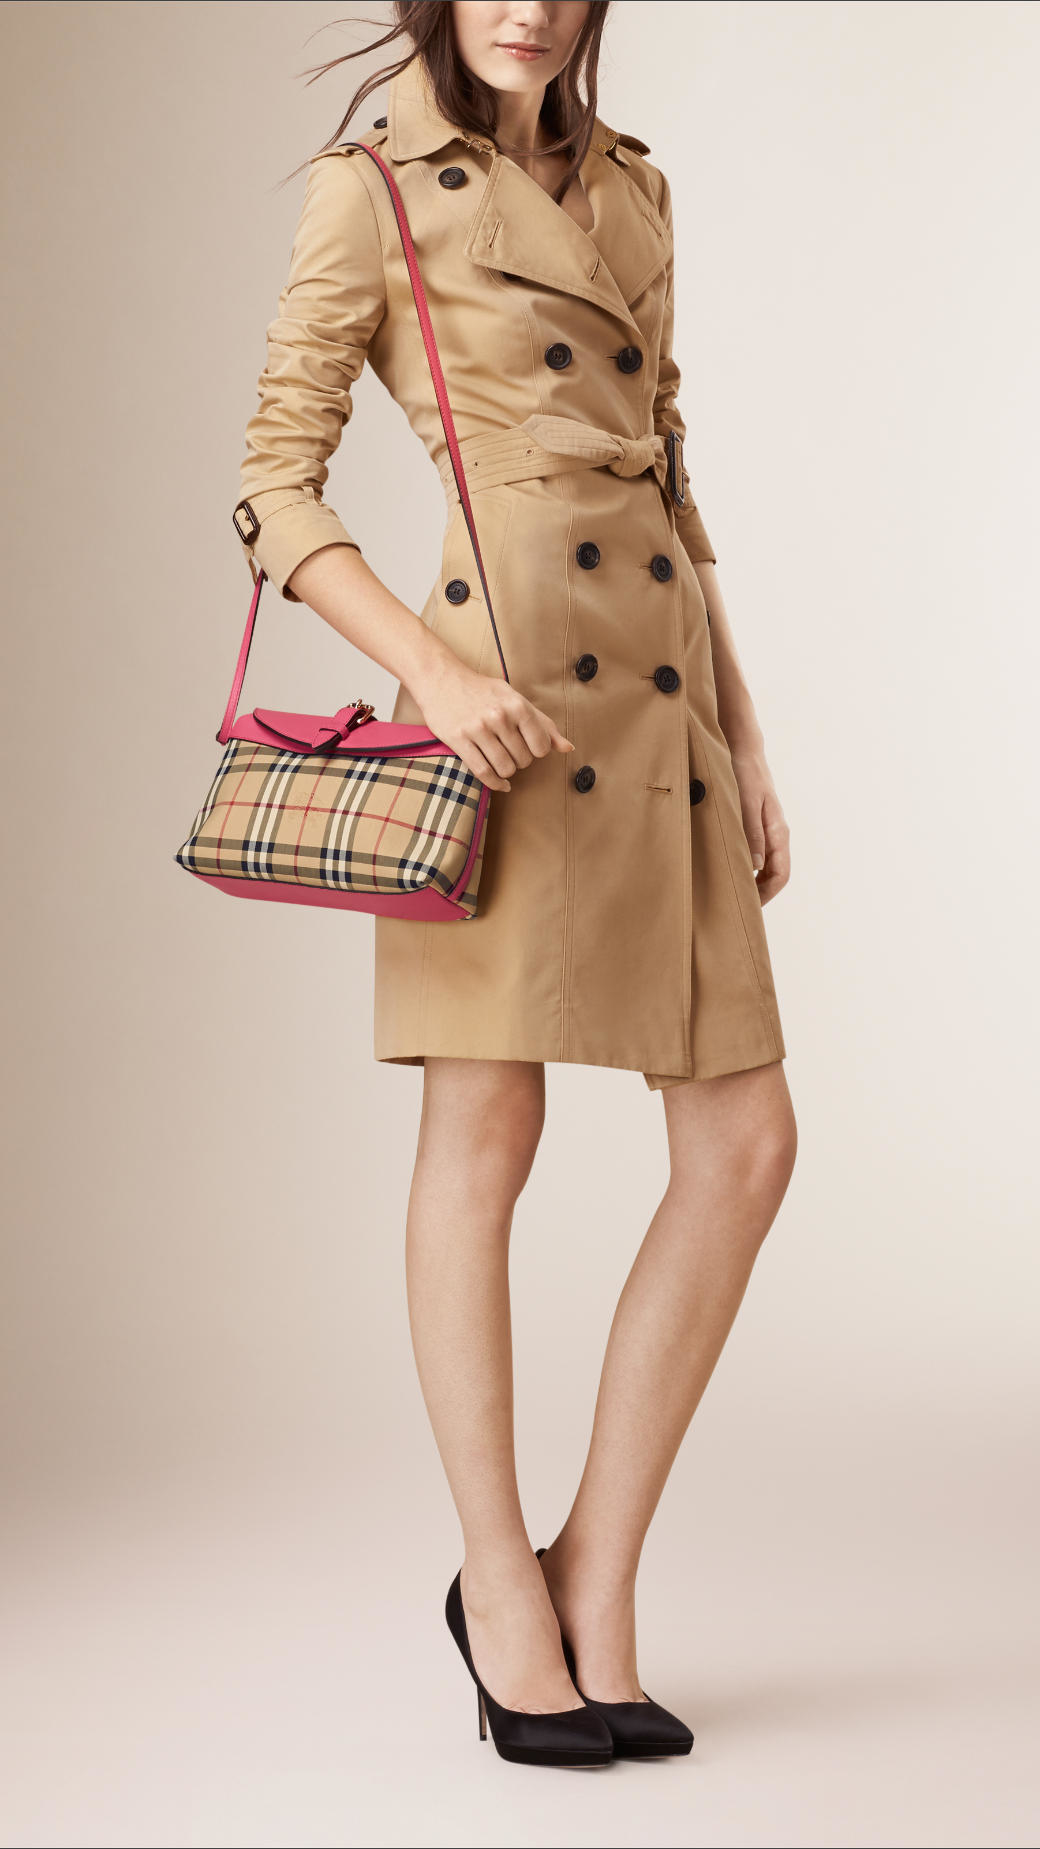 94471f06c8 Burberry Small Horseferry-Check Clutch Bag in Natural - Lyst